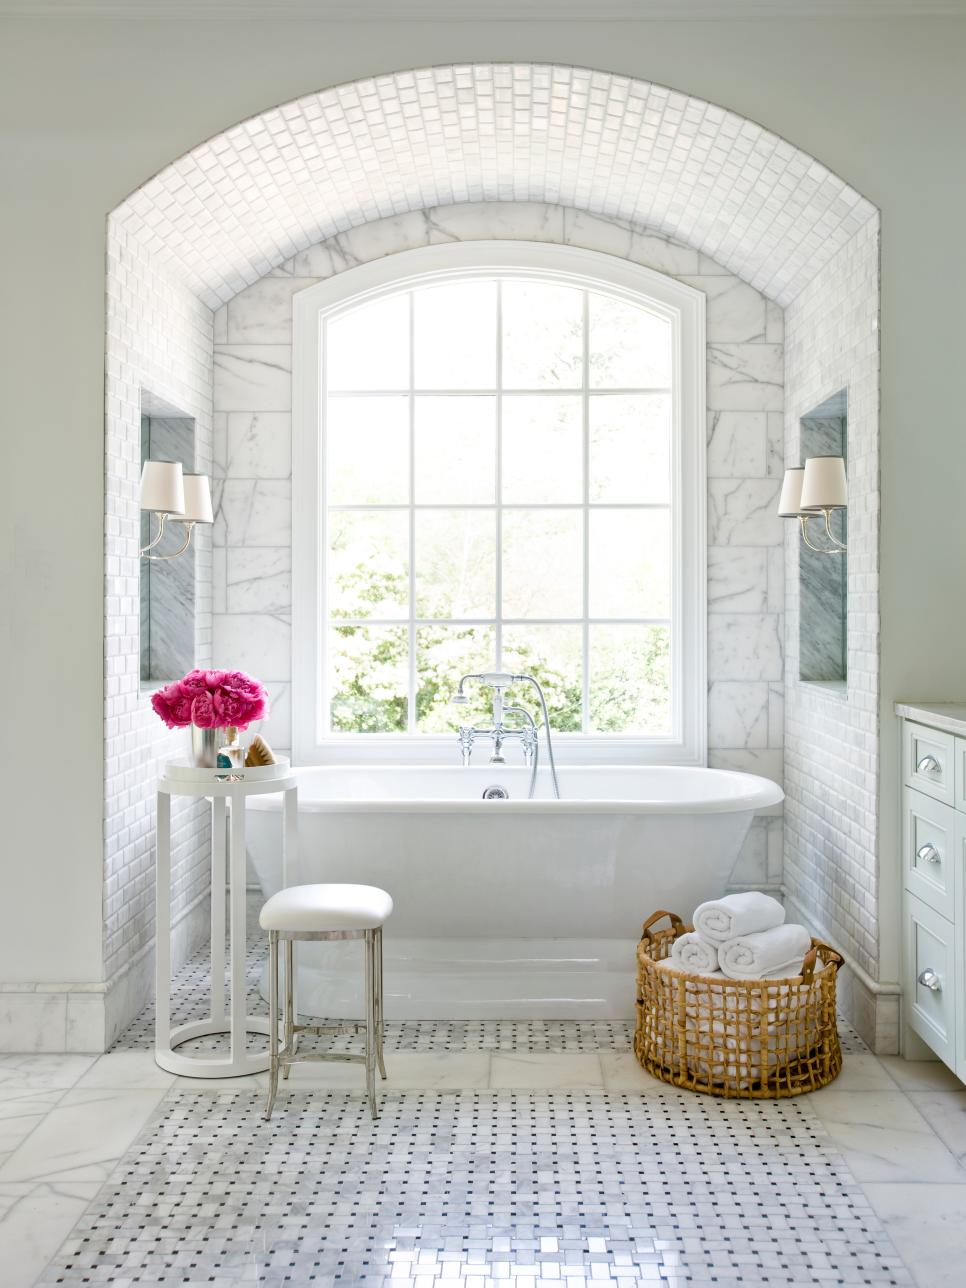 15 simply chic bathroom tile design ideas hgtv - Bathroom Tile Ideas Bathroom